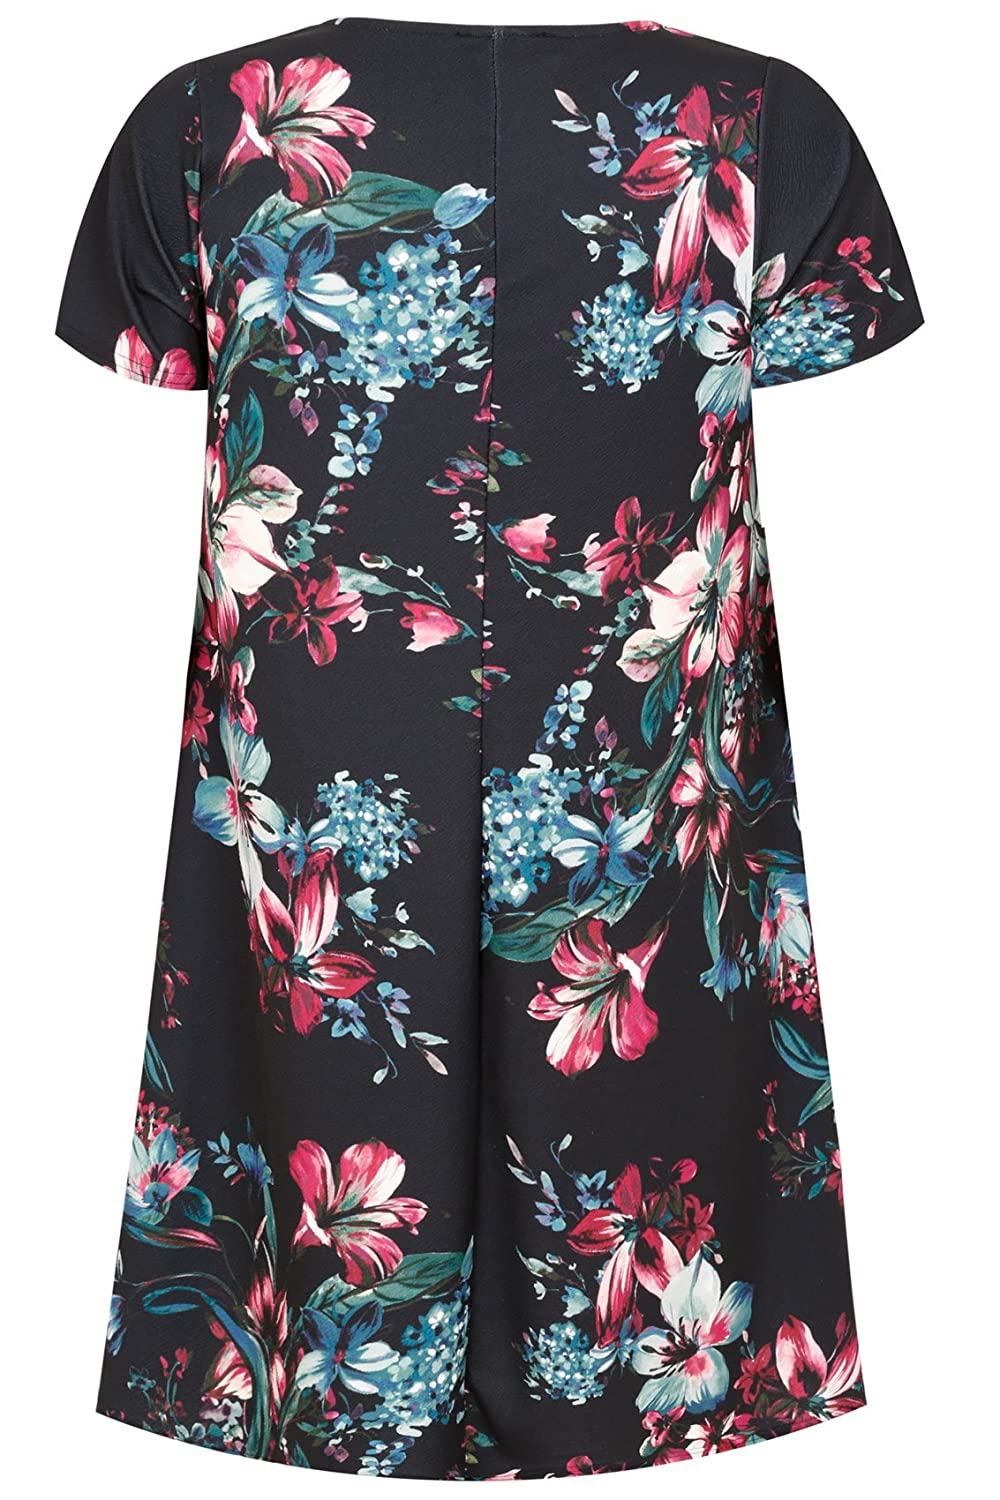 Yoursclothing Plus Size Womens Black, Pink & Teal Floral Print Swing Dress